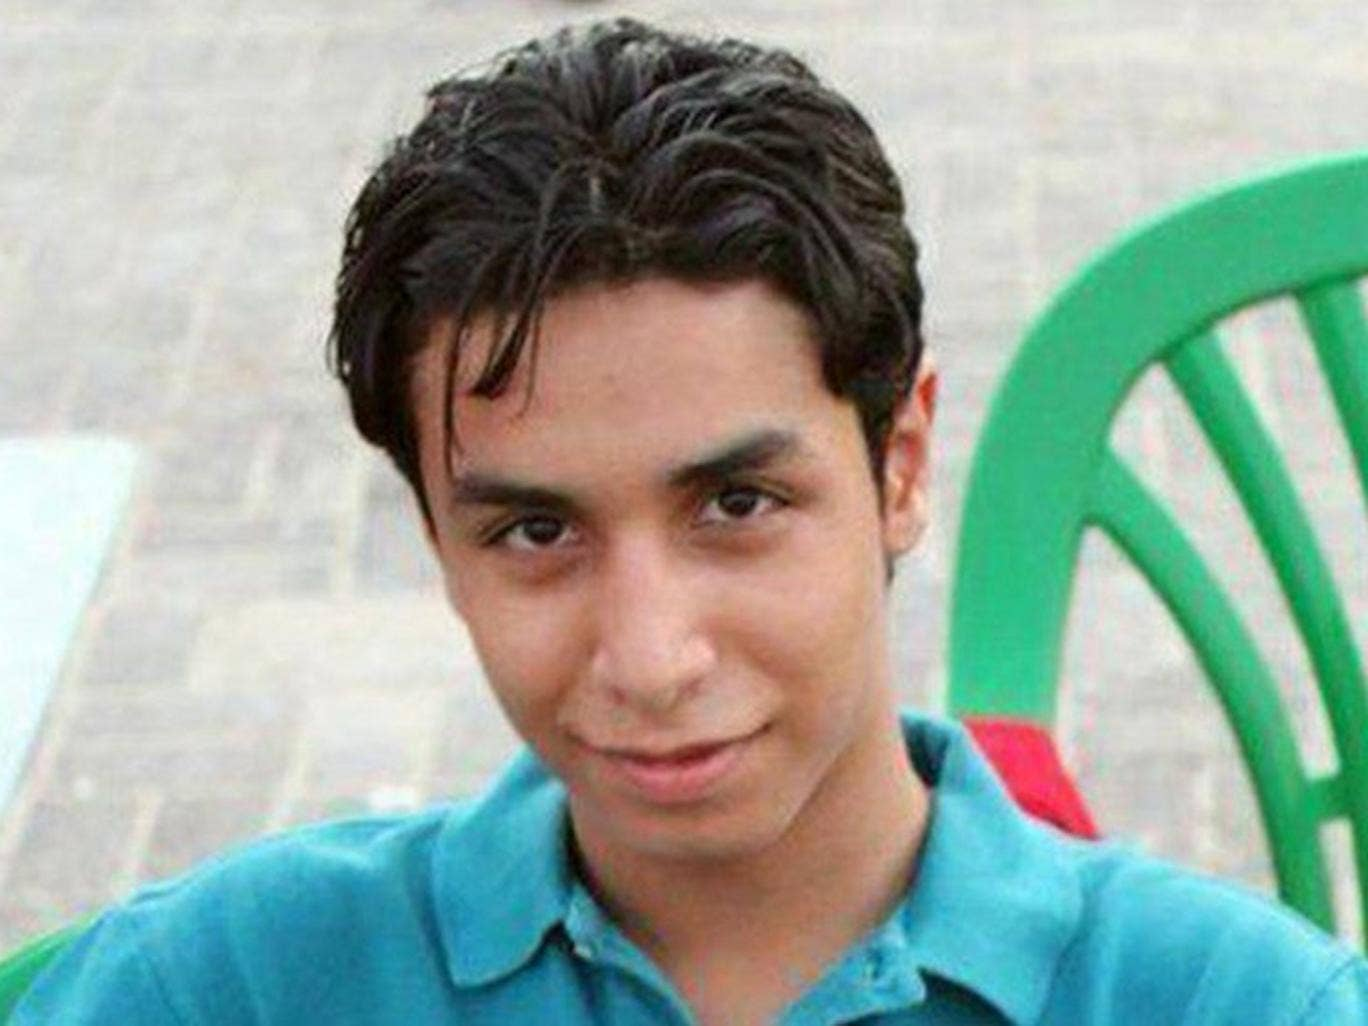 Ali al-Nimr, Sheikh Nimr al-Nimr's nephew, is among those feared to be facing execution